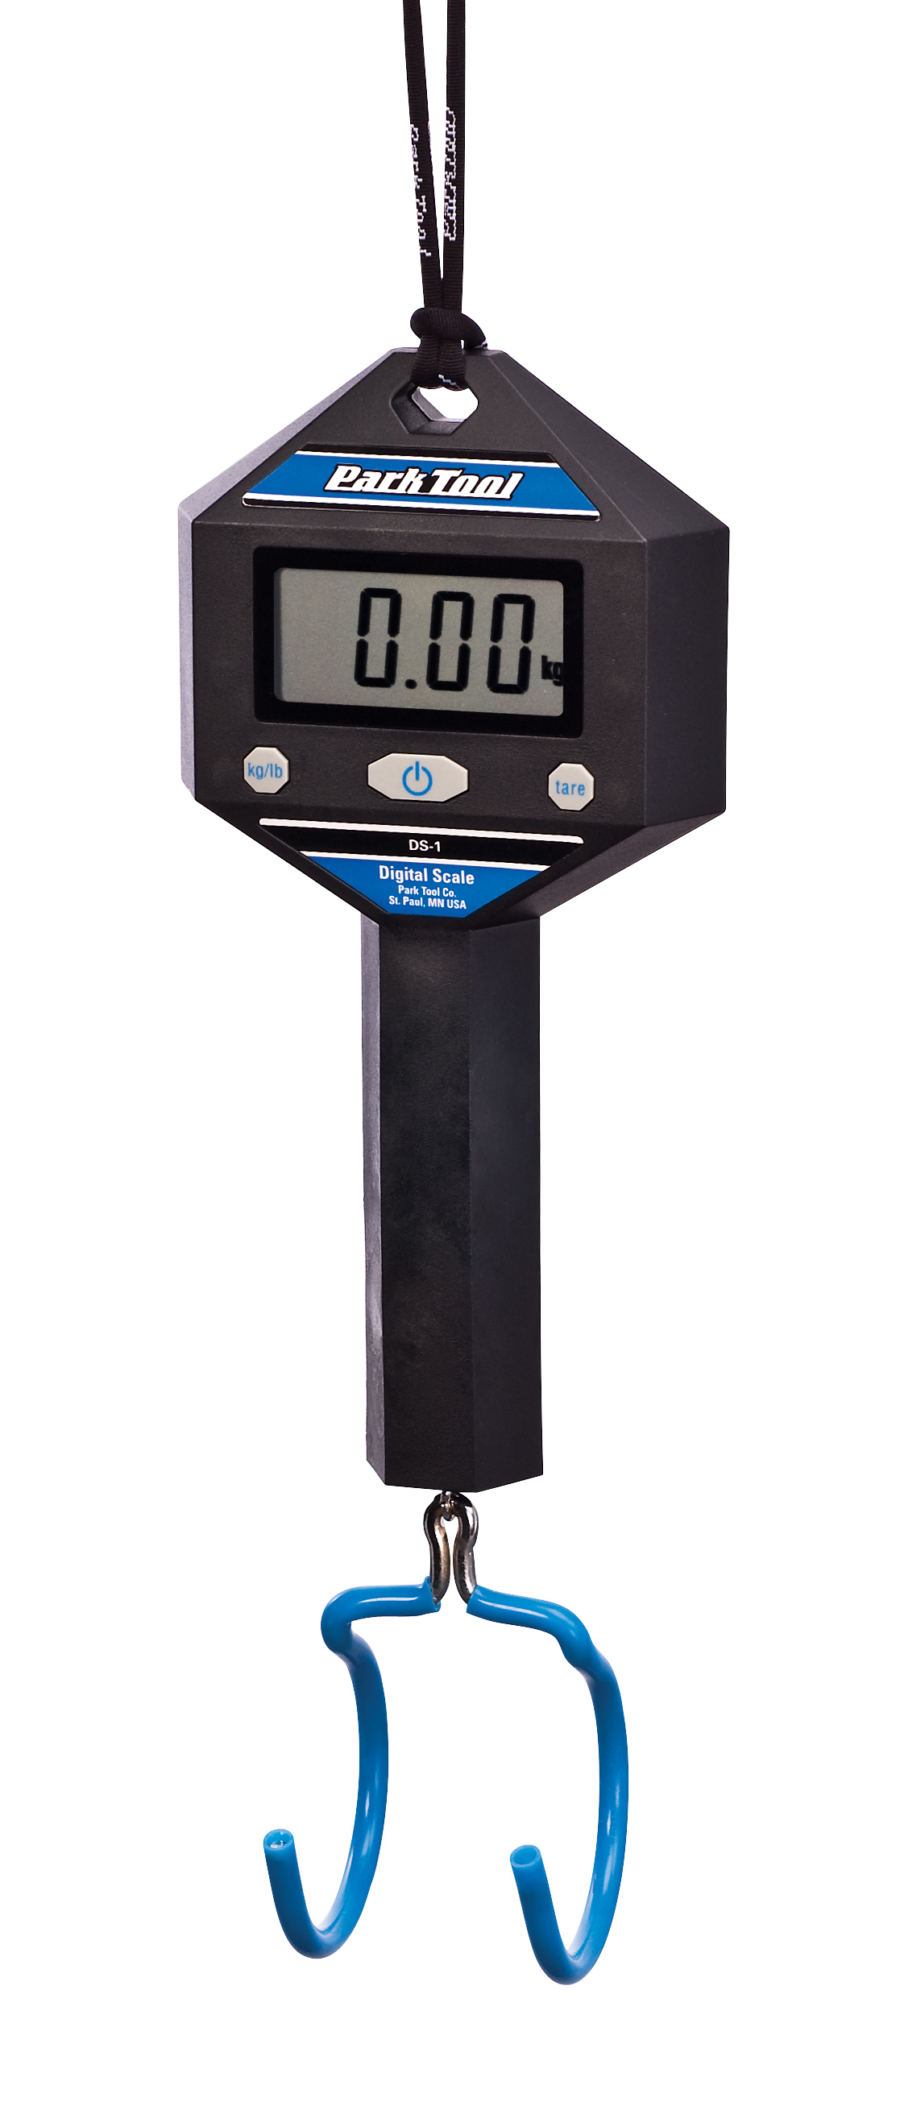 The Park Tool DS-1 Digital Scale, enlarged